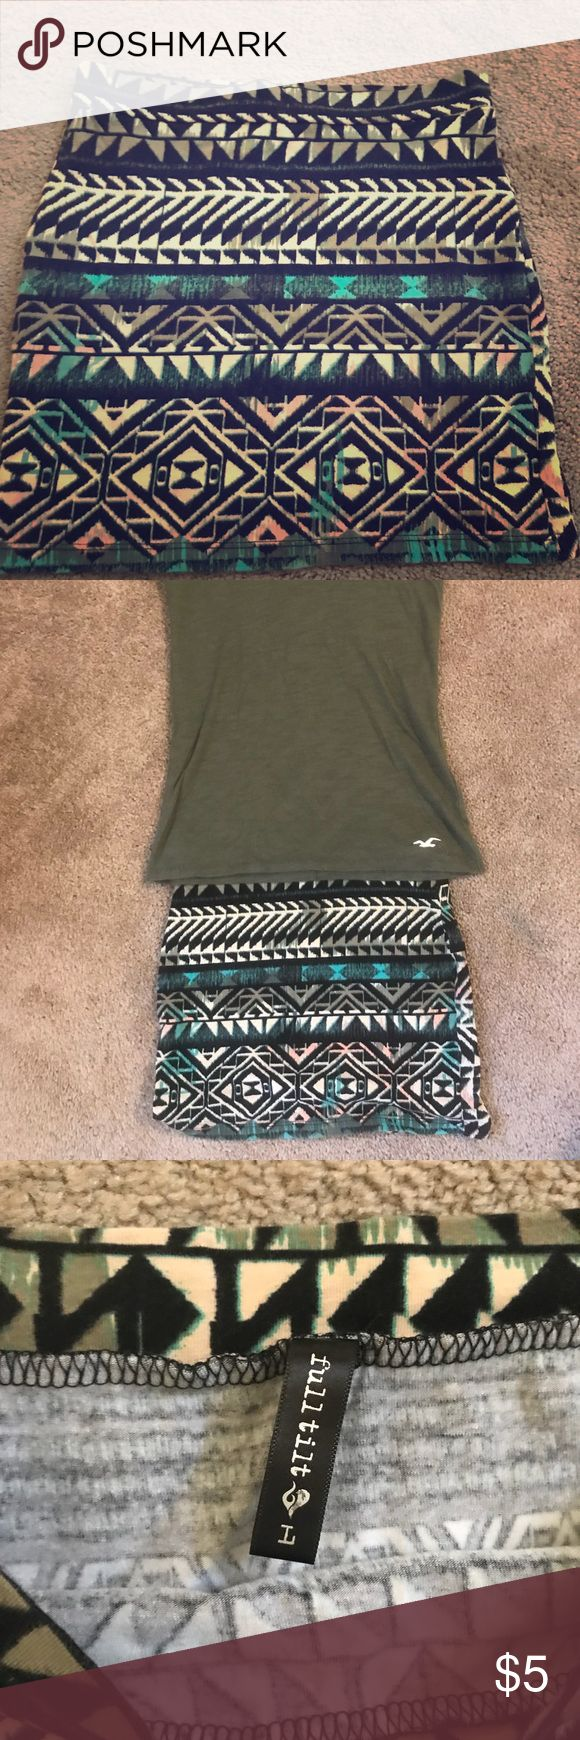 Tilly's girls tribal print skirt size Large. Cute! This is a cute little tribal mini shirt by Tilly's. Great worn alone or with tights under it :-) Girls size Large, excellent condition, worn one time! Tilly's Dresses Casual